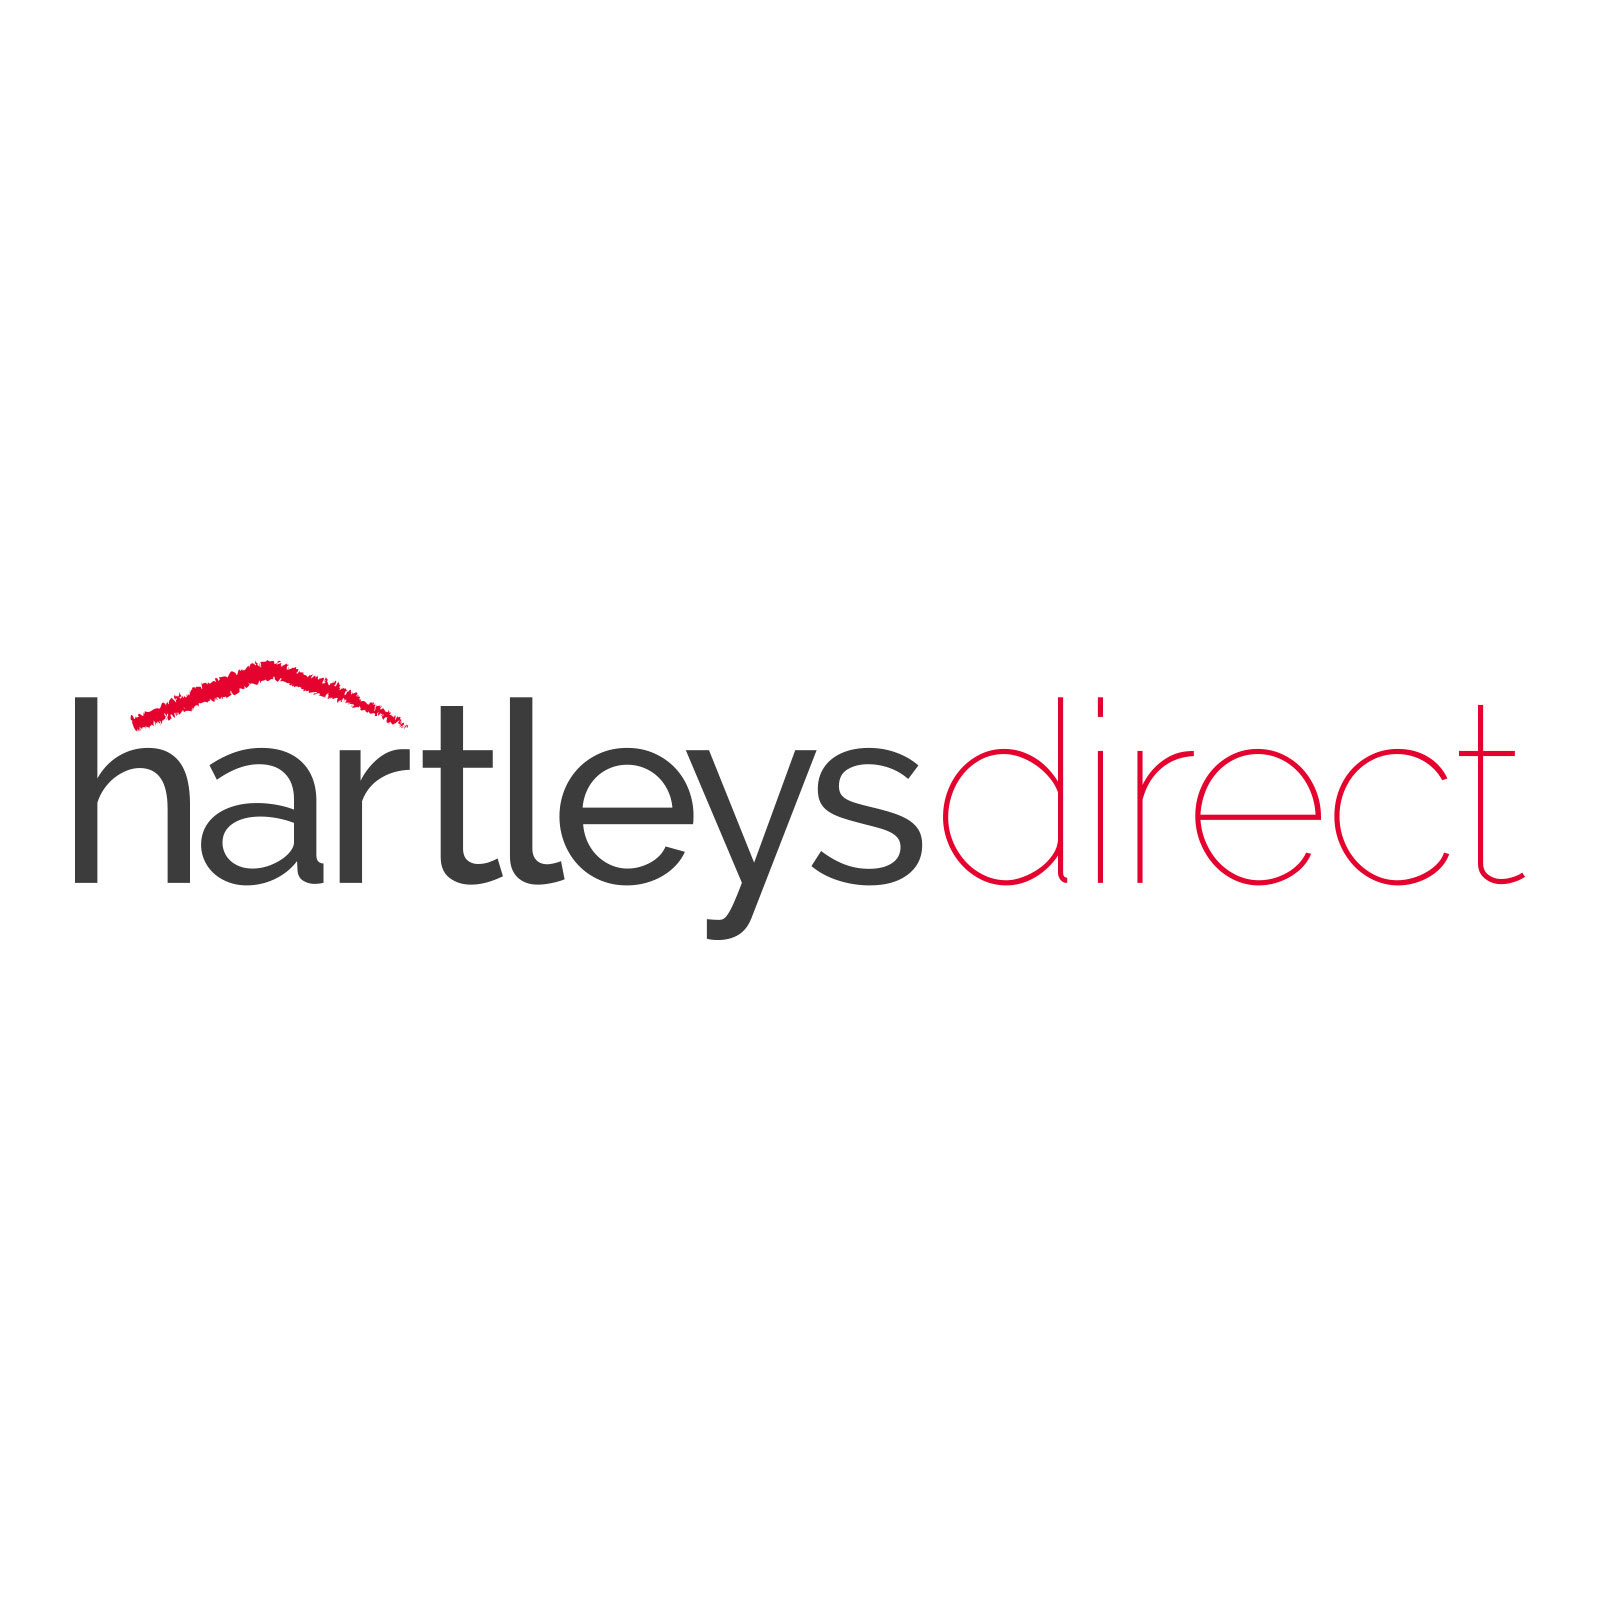 Hartleys-Grey-Retro-Toilet-Brush-on-White-Background-with-Colour-Swatches.jpg